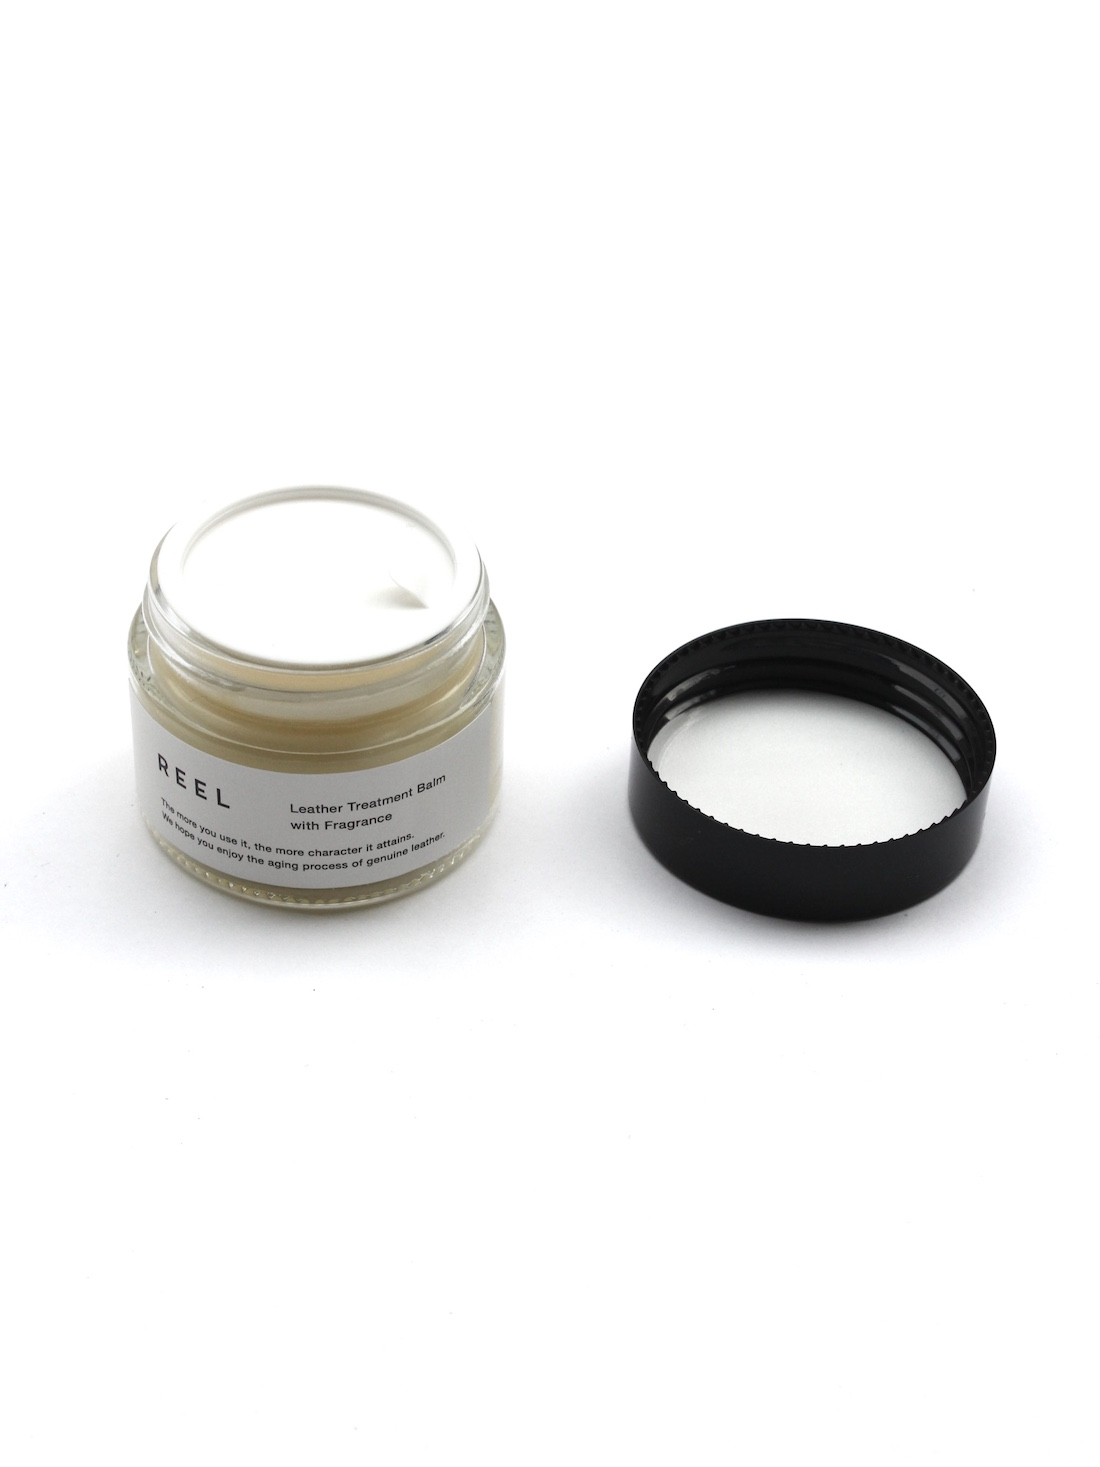 REEL / Leather Treatment Balm -with Fragrance-